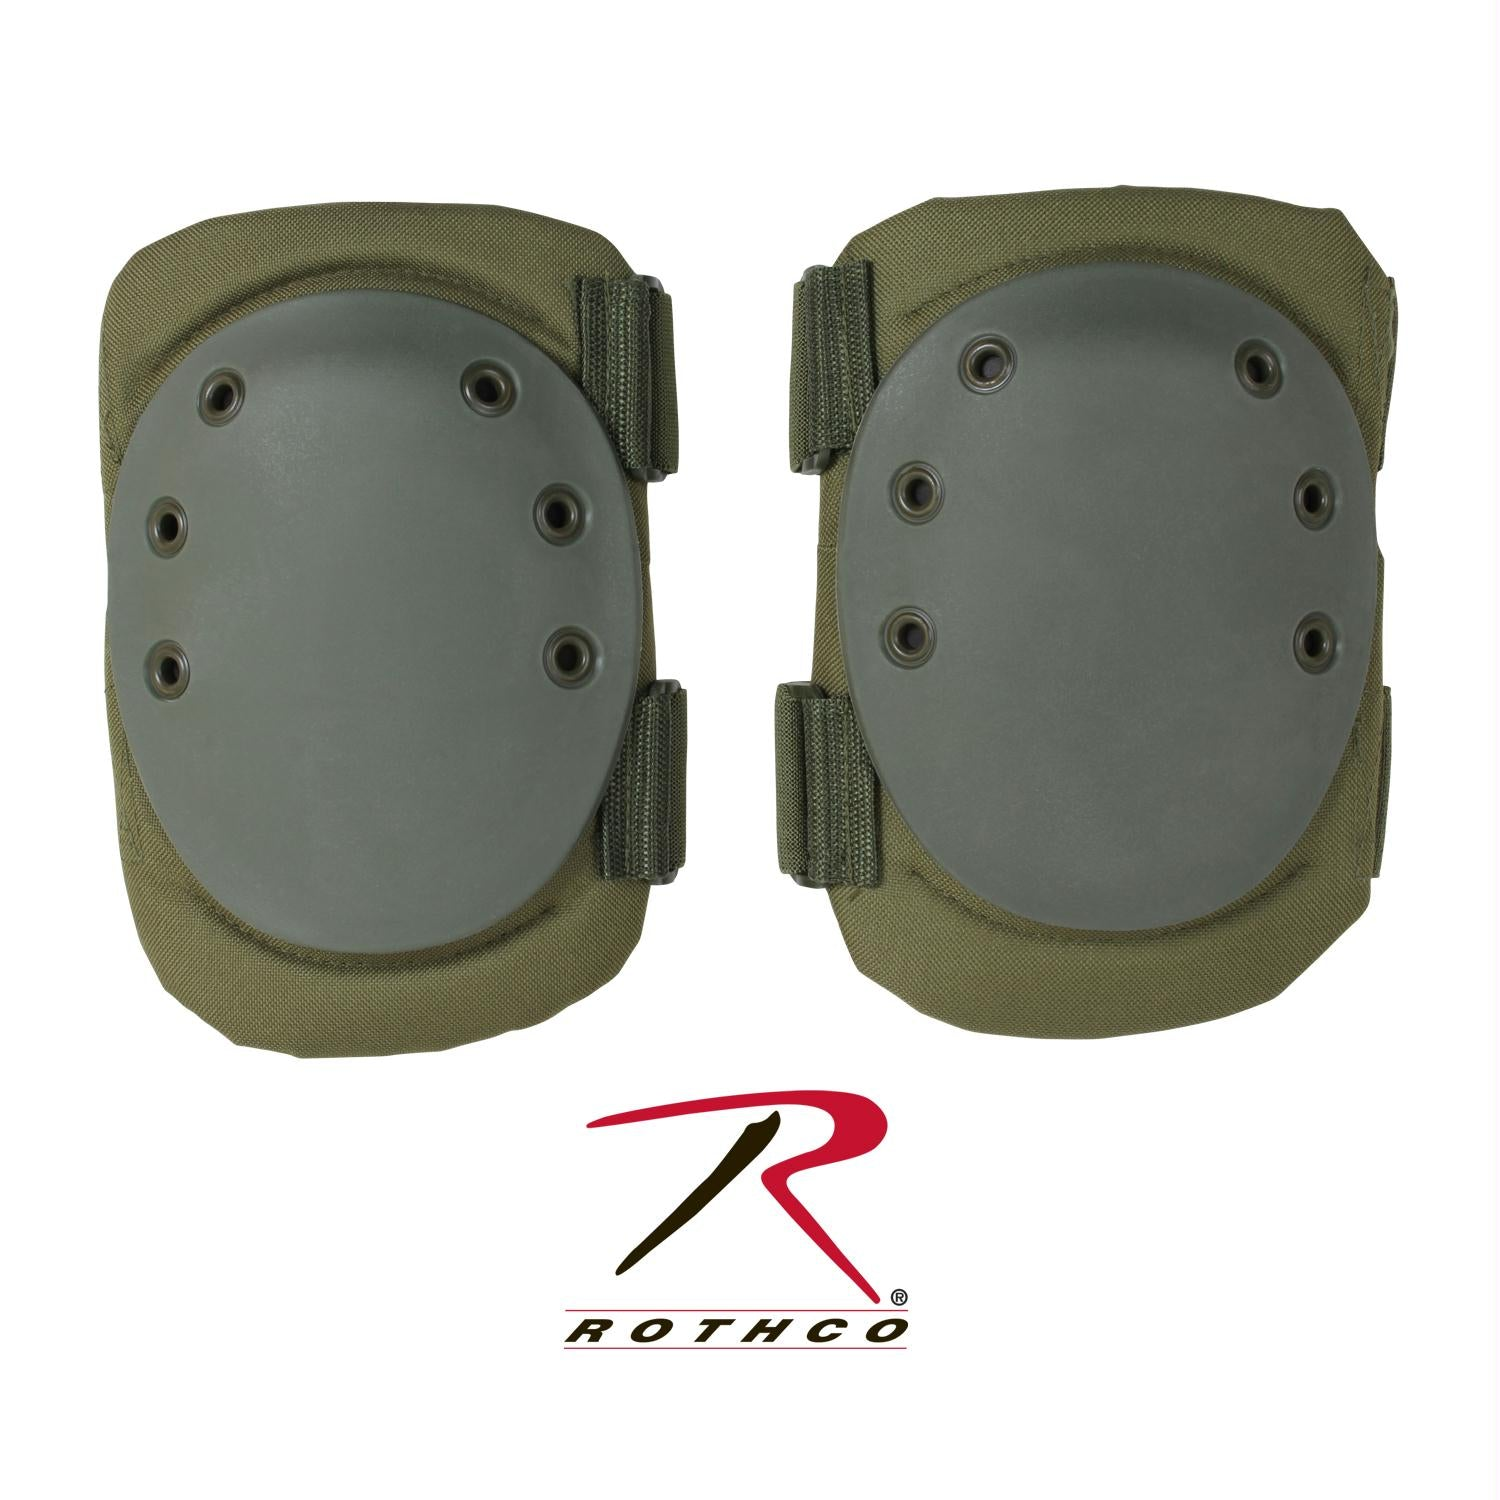 Rothco Tactical Protective Gear Knee Pads - Olive Drab